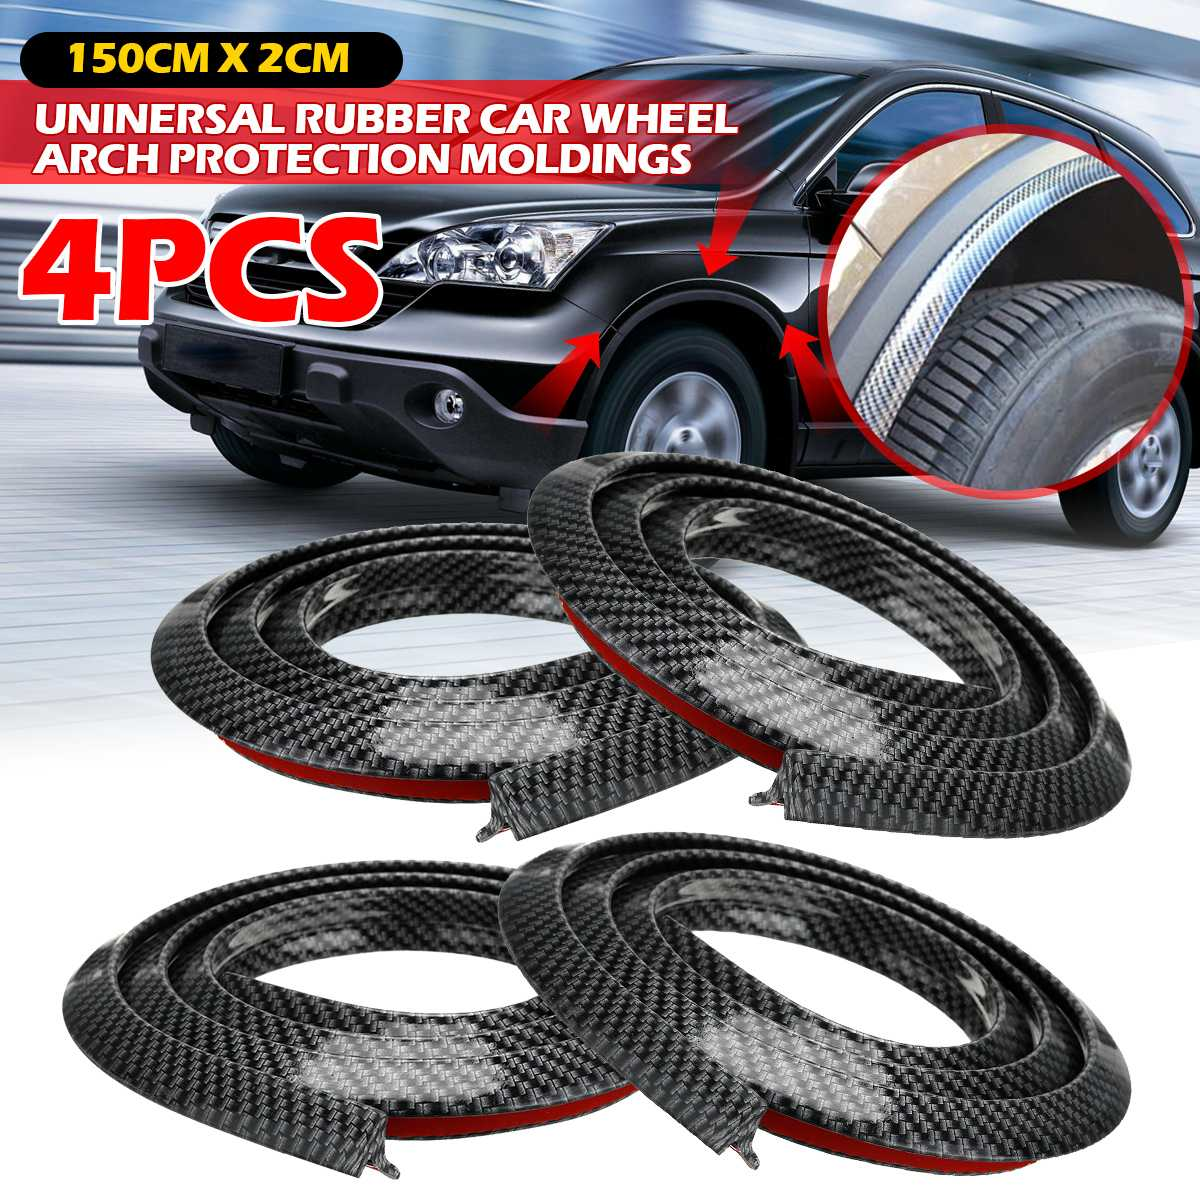 4 / 2 PCS Universal Rubber Car Mudguard Wheel Arch Protection Moldings Carbon Black 1.5x2CM Anti-collision Strip Stickers